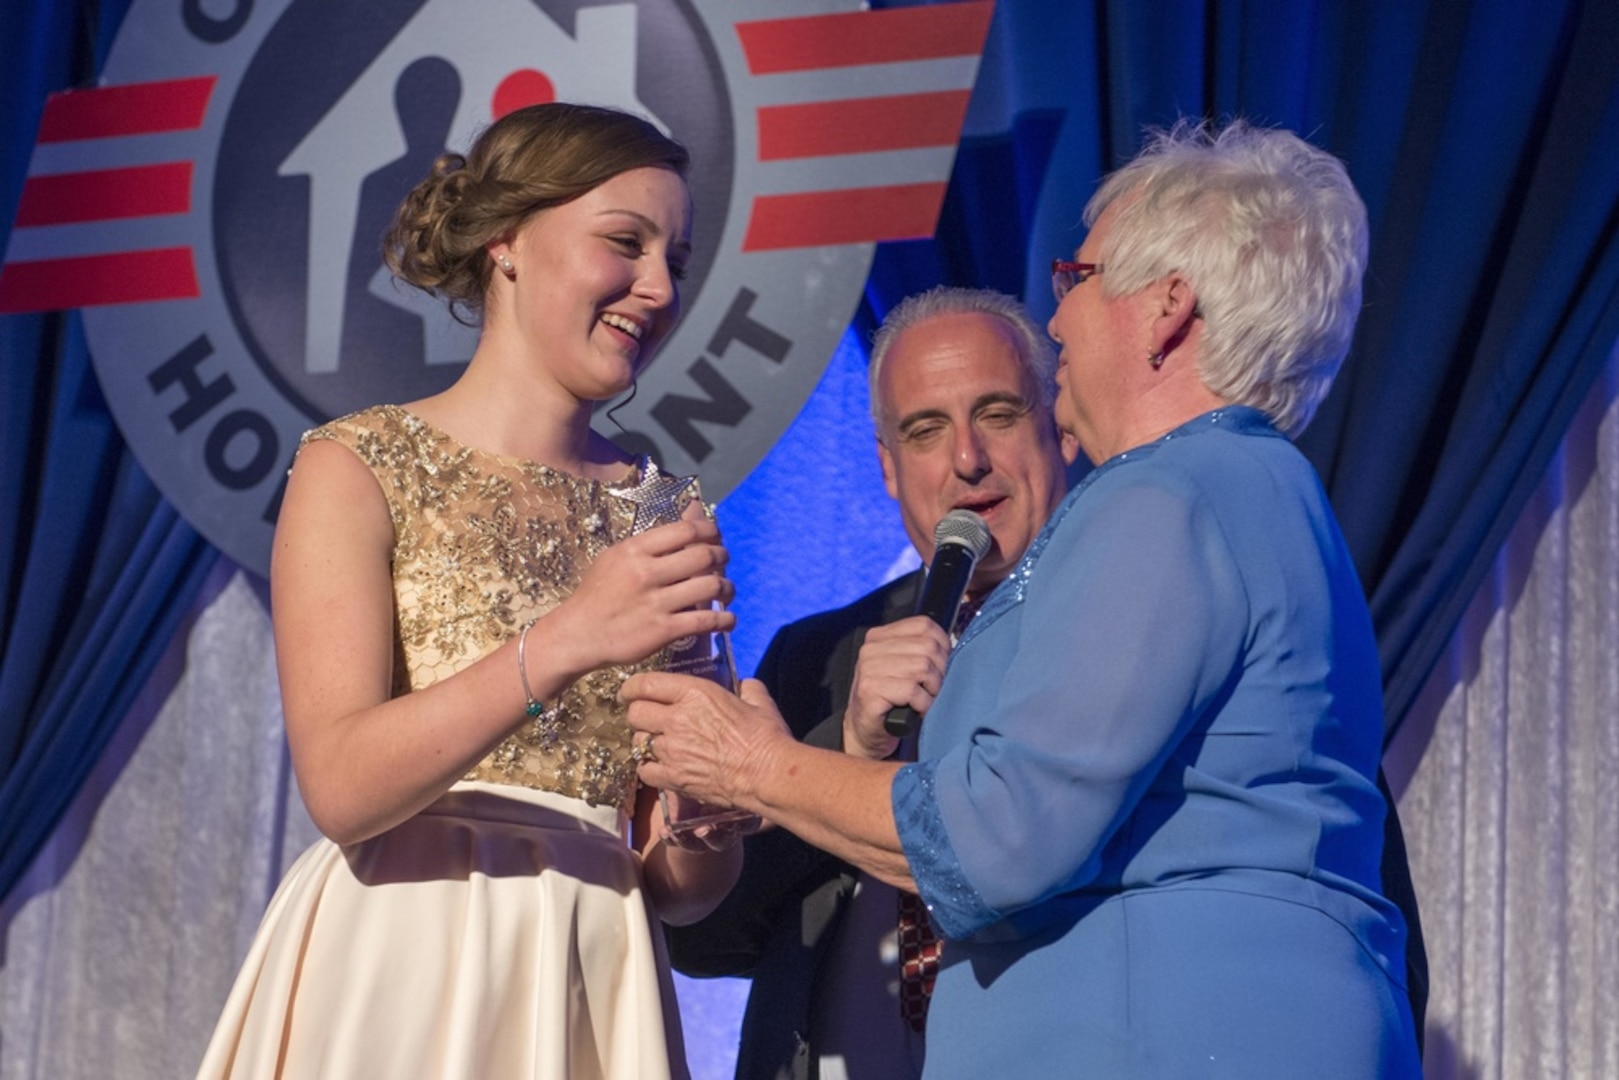 WASHINGTON- Molly Frey, left, receives the Military Child of the Year® award for the National Guard from her grandmother during the 2017 Military Child of the Year® Awards gala at a Ritz-Carlton hotel. Each year, the Military Child of the Year® Award is presented by Operation Homefront to outstanding military children who demonstrate resiliency, leadership and achievement. (U.S. Navy photo my Mass Communication Specialist 3rd Class Eric S. Brann /Released)